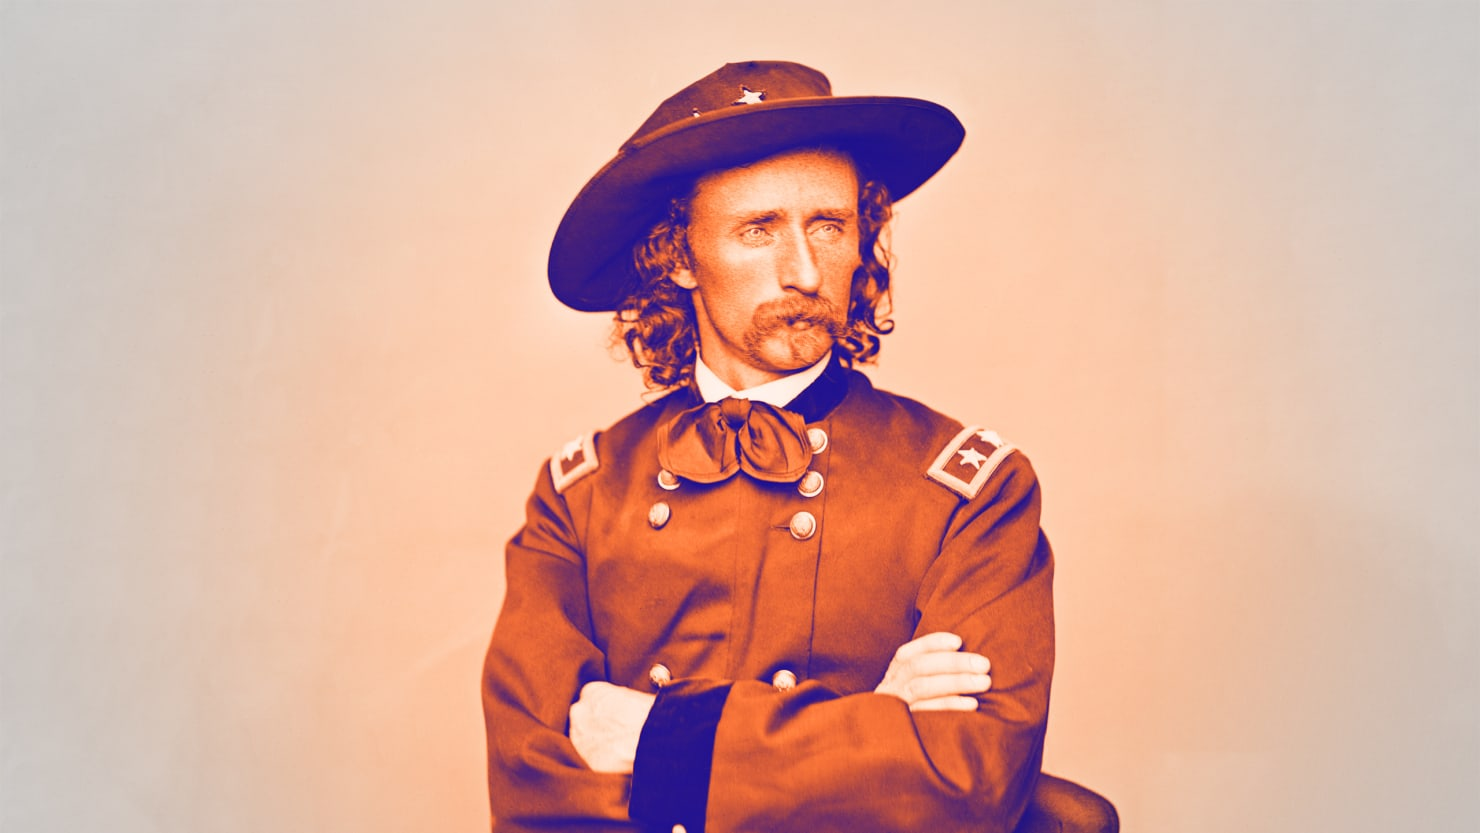 Custer Was Colorful and Eccentric but Very Much a Man of His Time